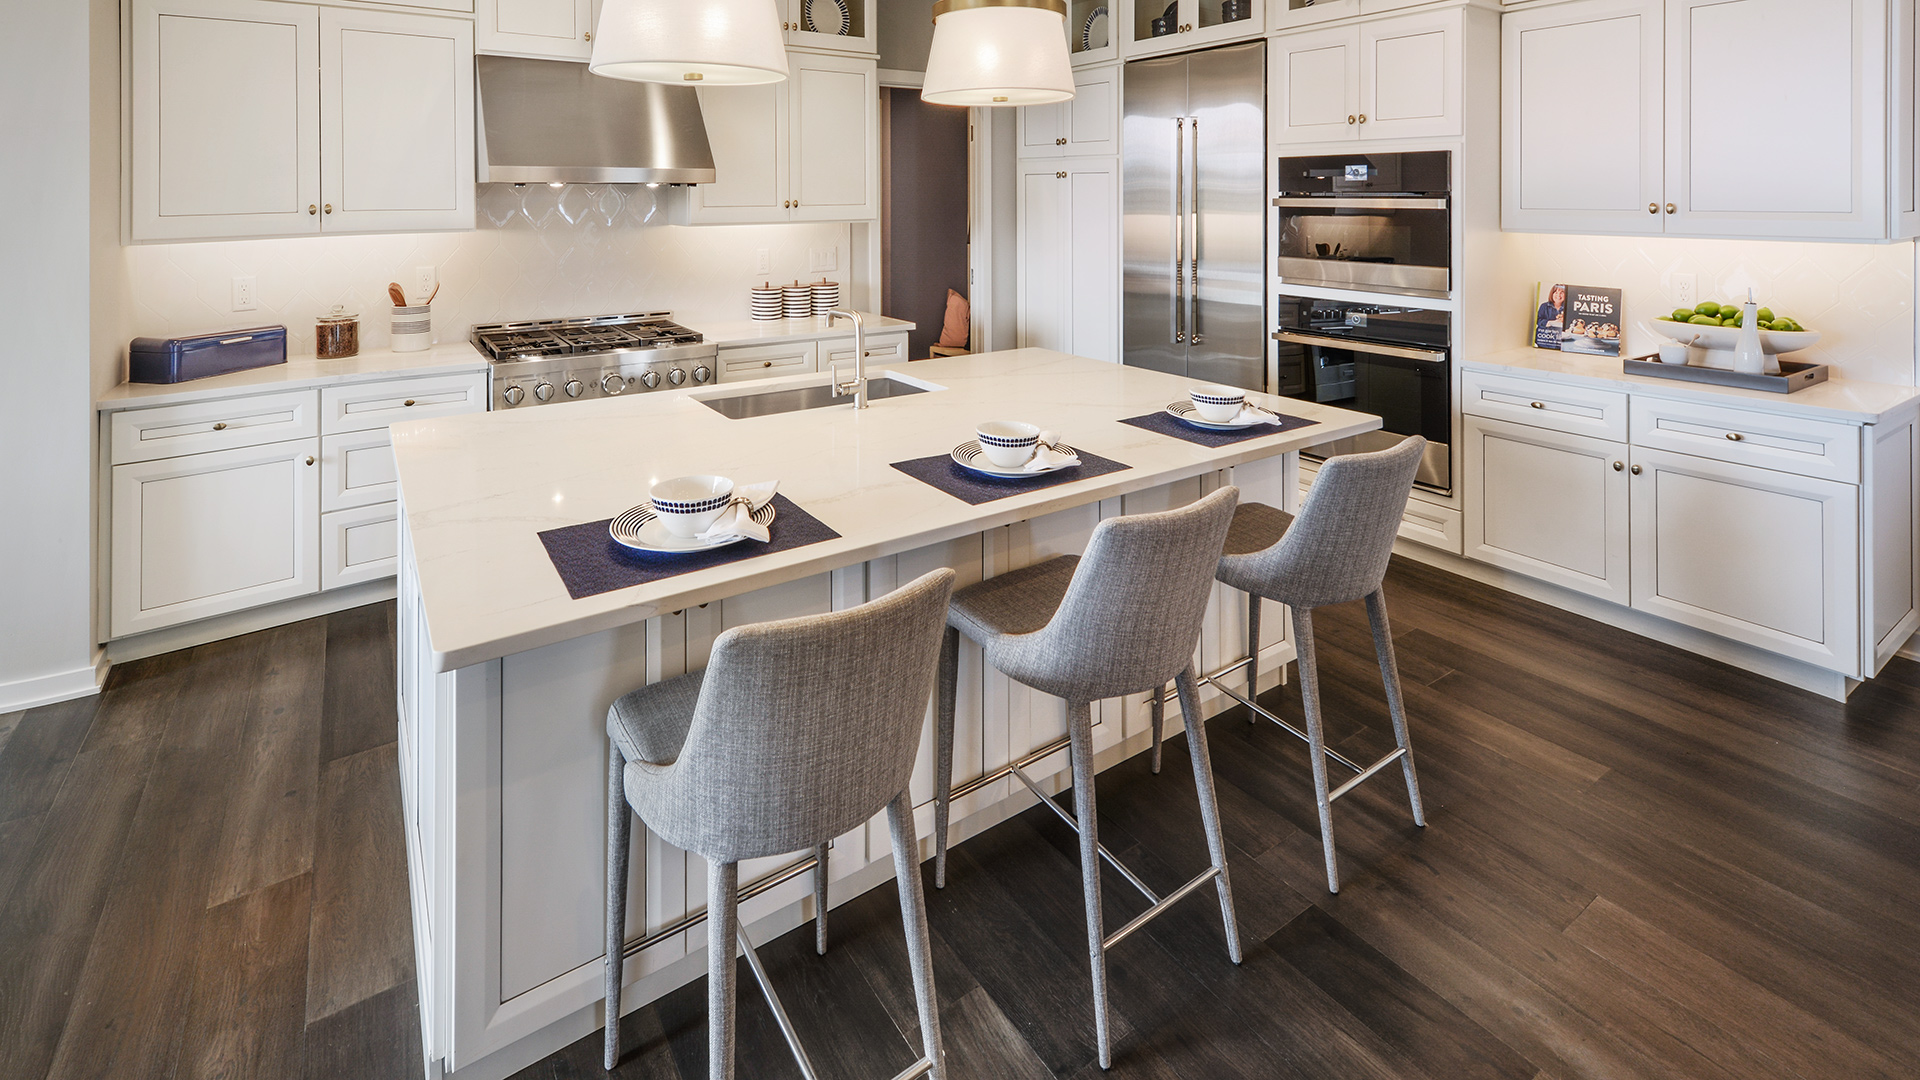 Spacious kitchen with center island and stainless-steel appliances